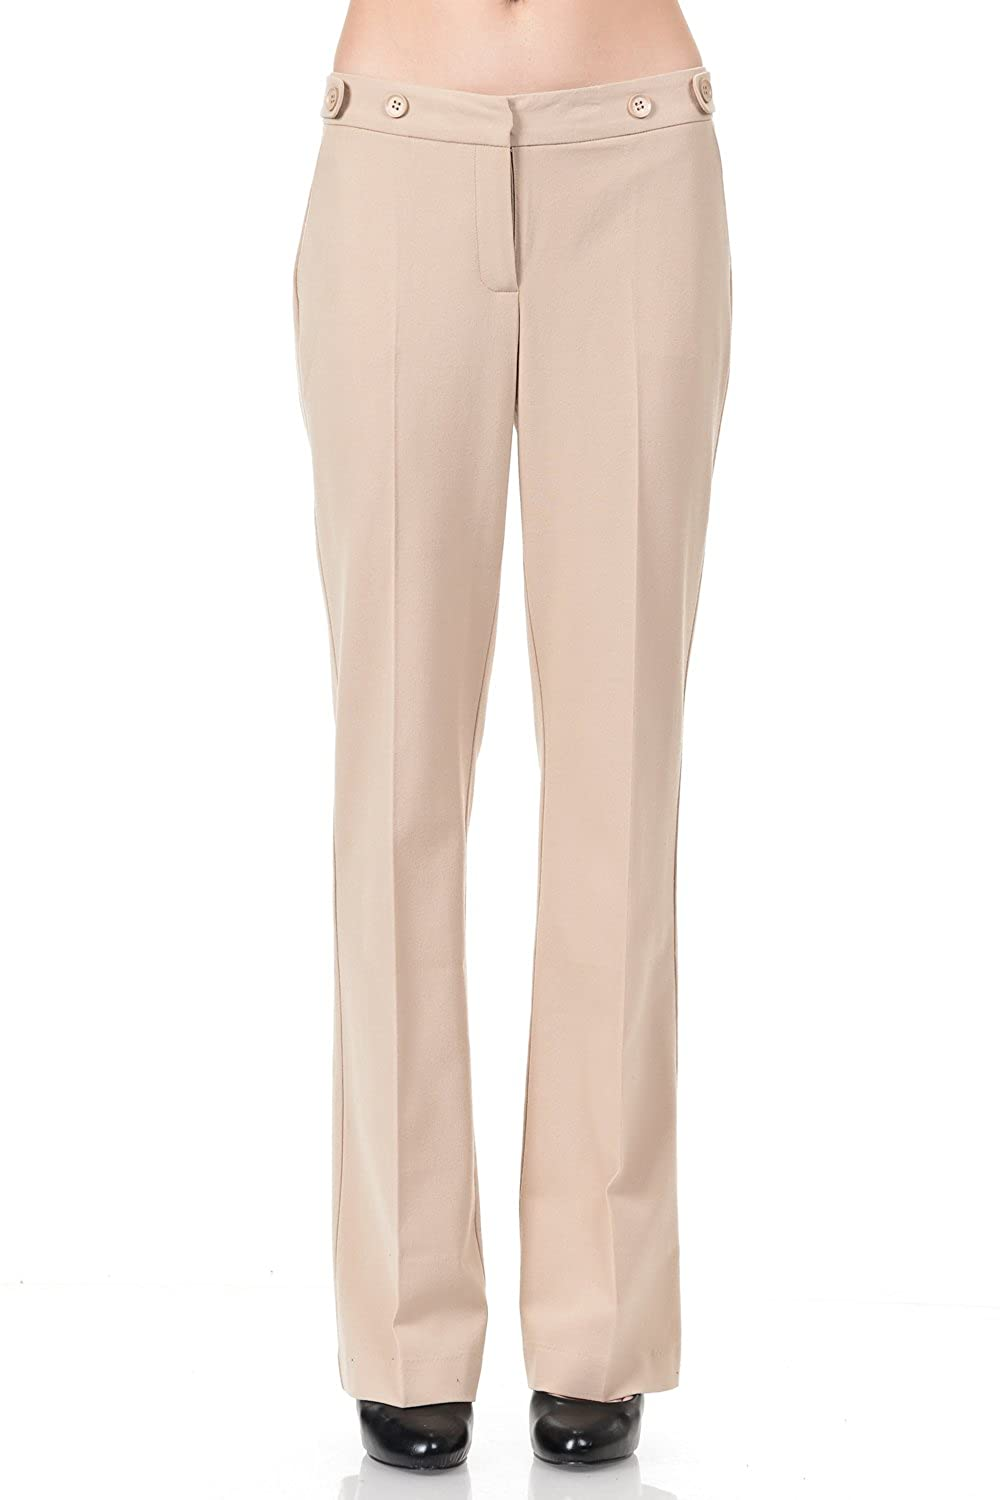 Maryclan Career Women's Office Work Pants with Double Button Tab Detail